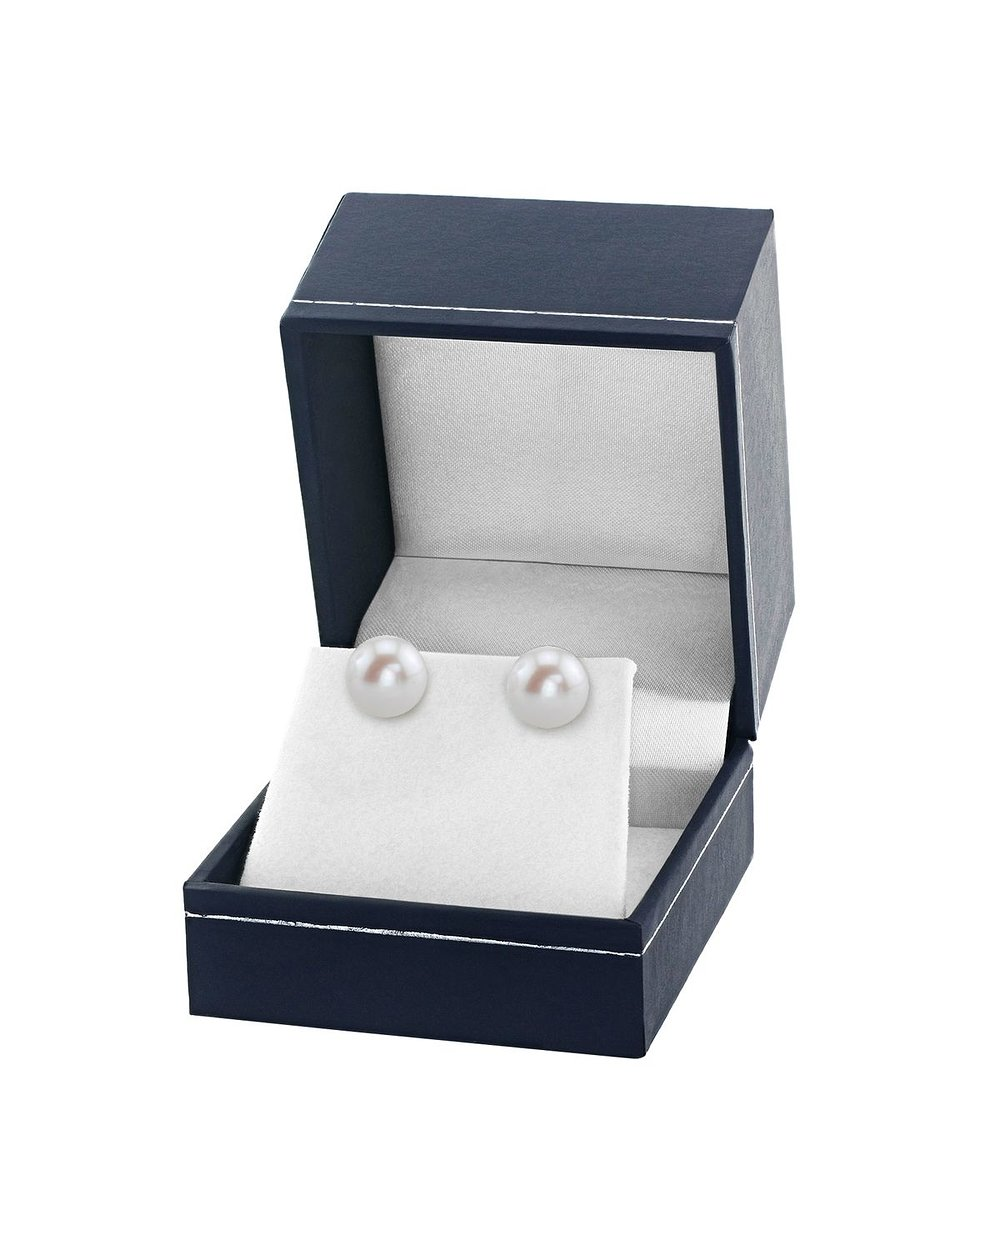 THE PEARL SOURCE 14K Gold 10-11mm AAA Quality Round White Freshwater Cultured Pearl Stud Earrings for Women by The Pearl Source (Image #3)